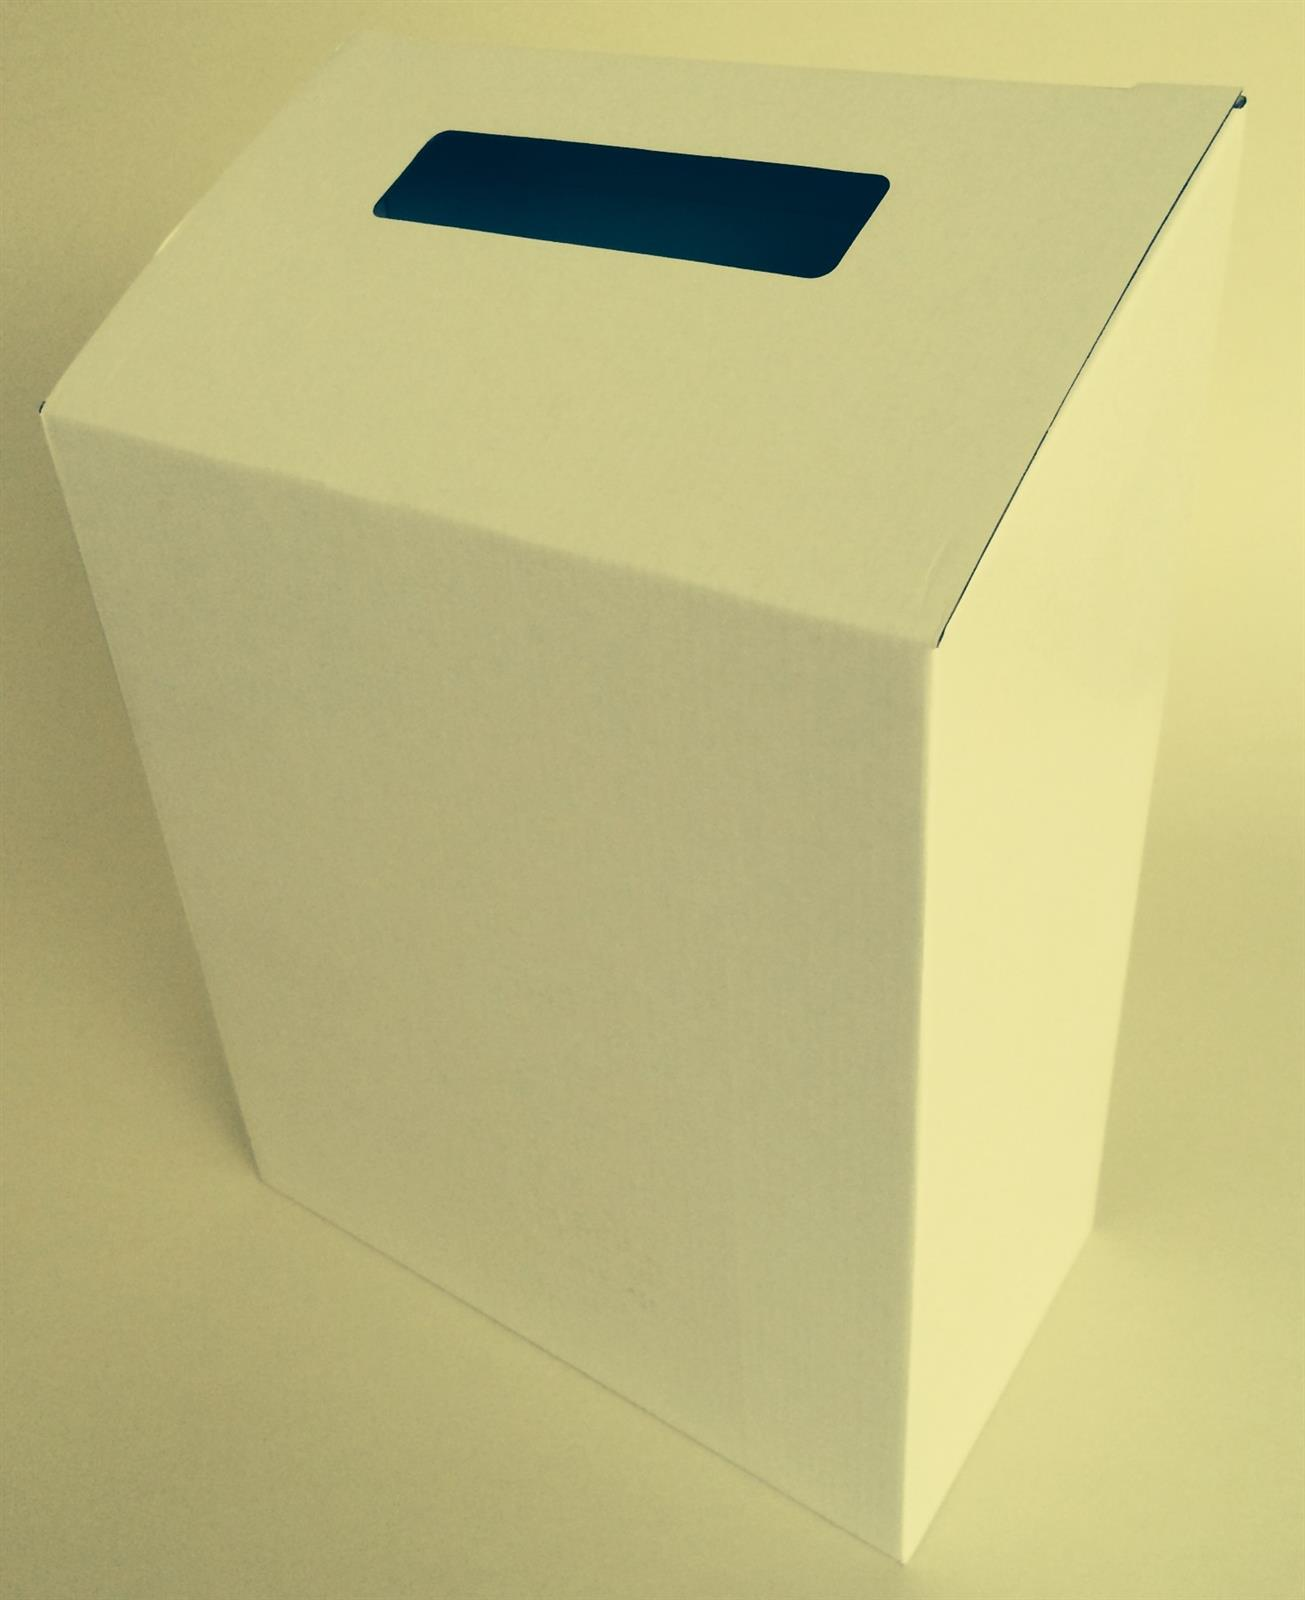 Cardboard Ballot Suggestion Box